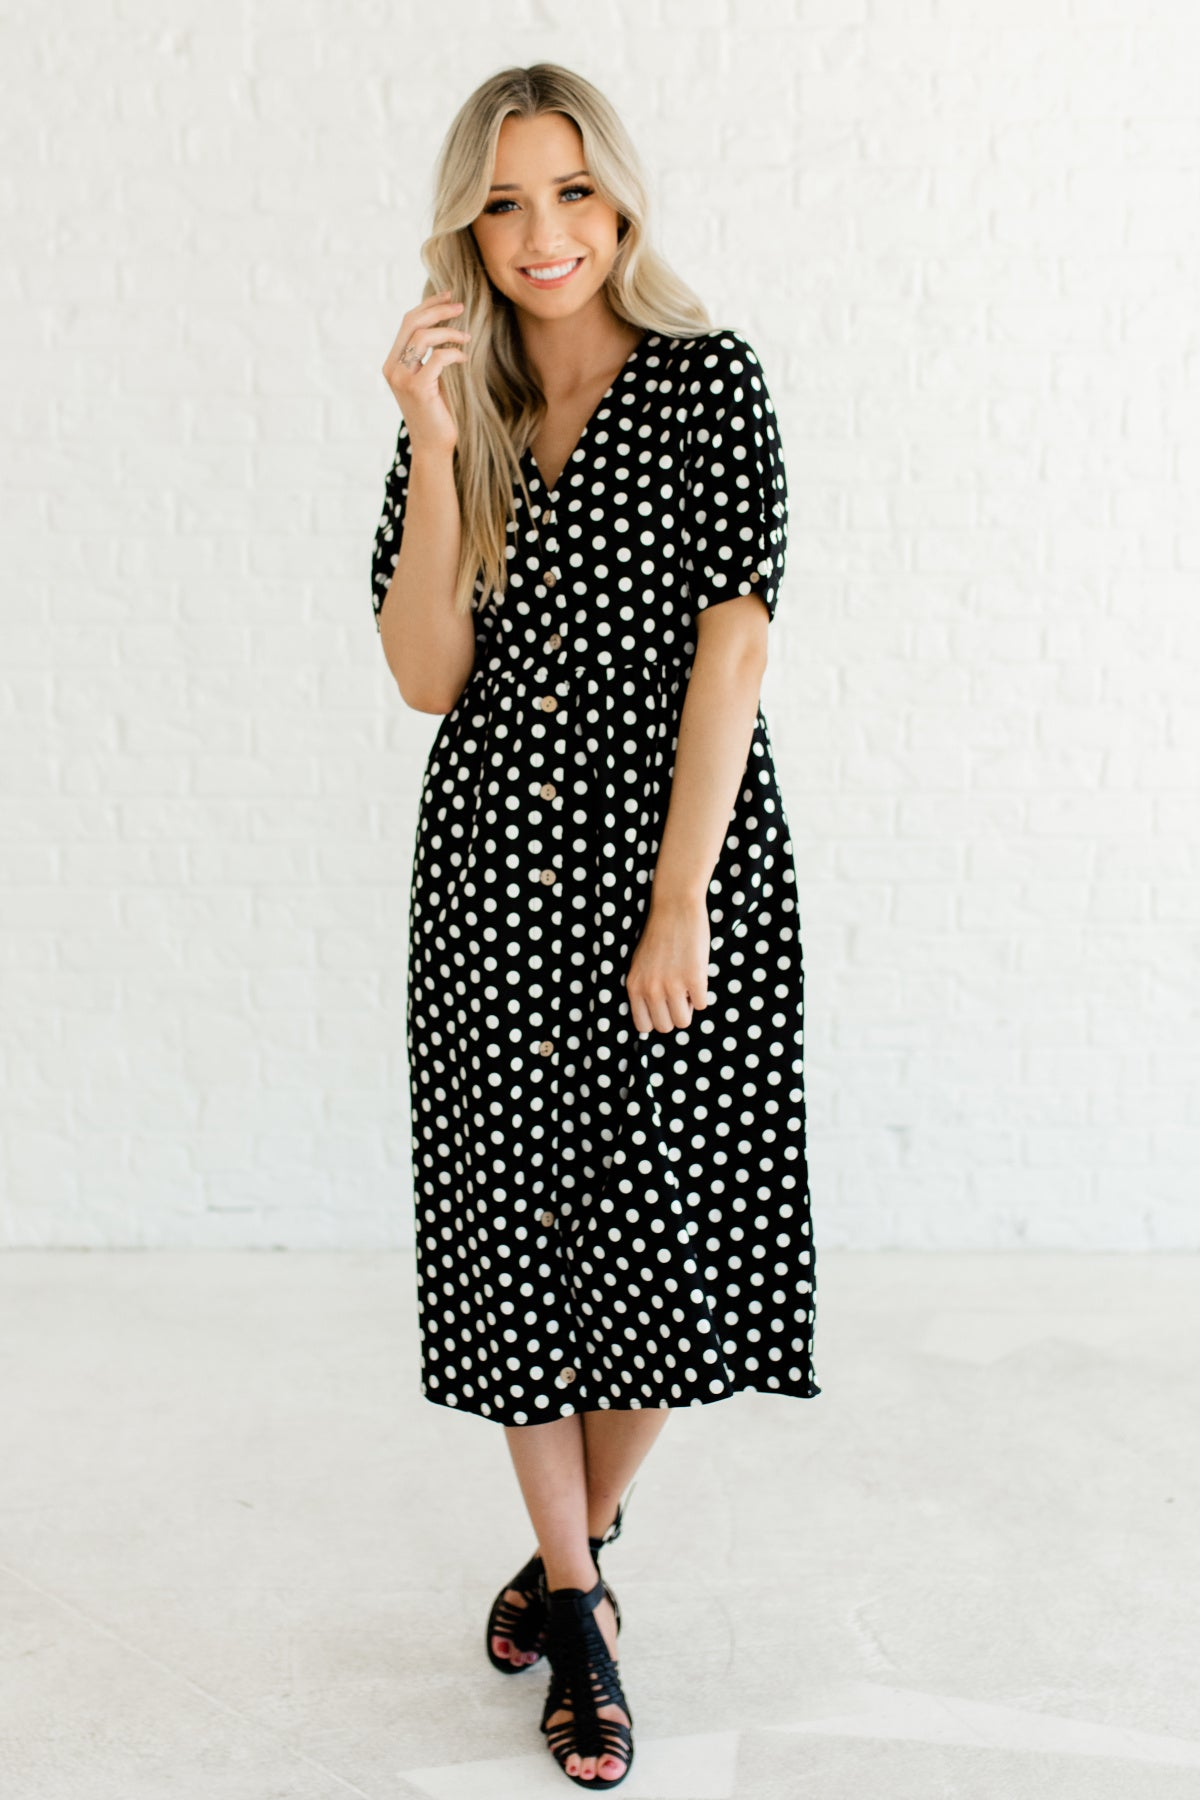 bcf5881c004 Black White Polka Dot Print Vintage Inspired Button Up Nursing Friendly Midi  Dresses